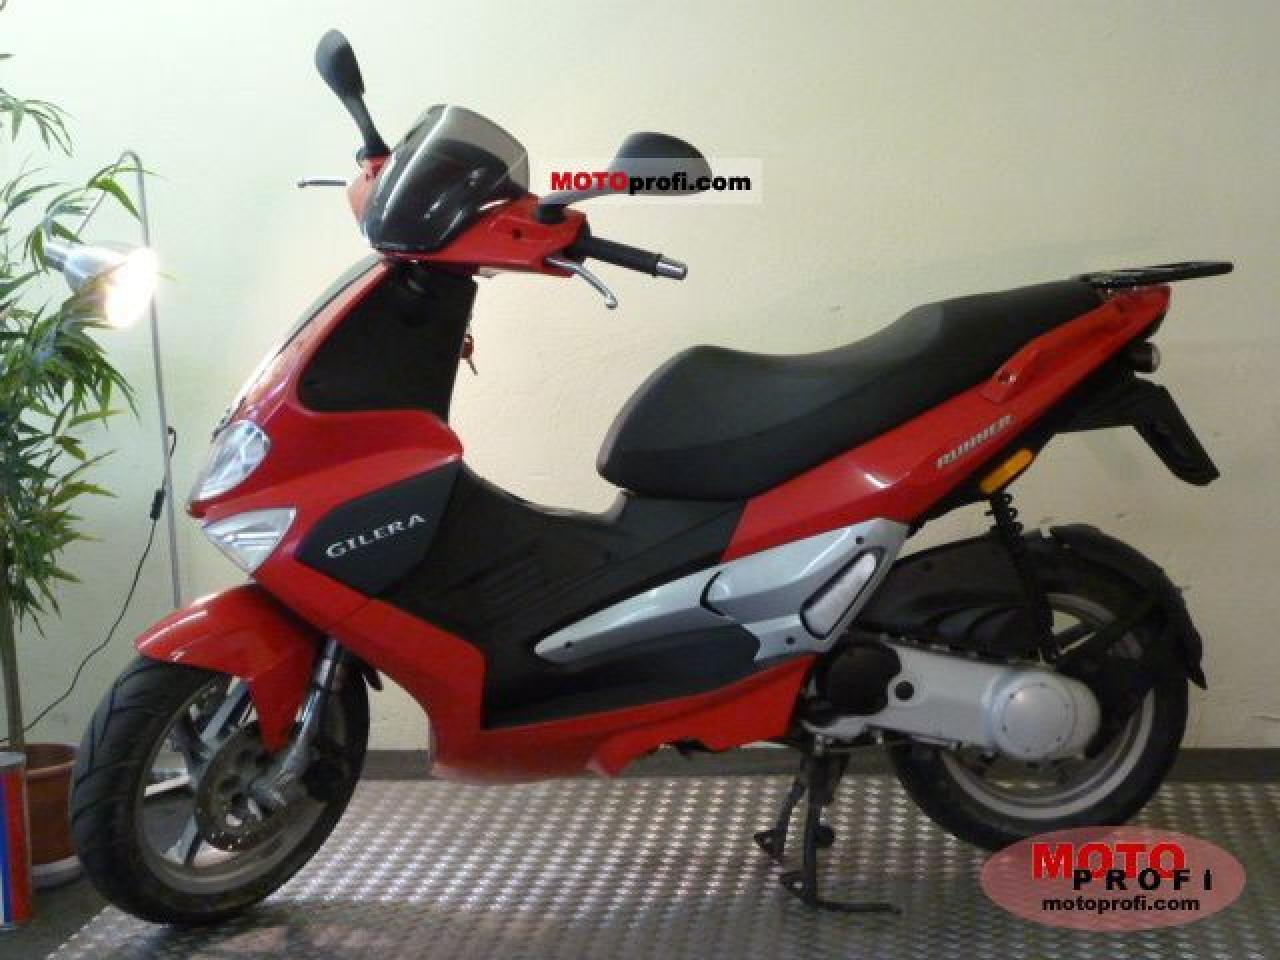 Gilera 50 Runner Racing Replica images #73885